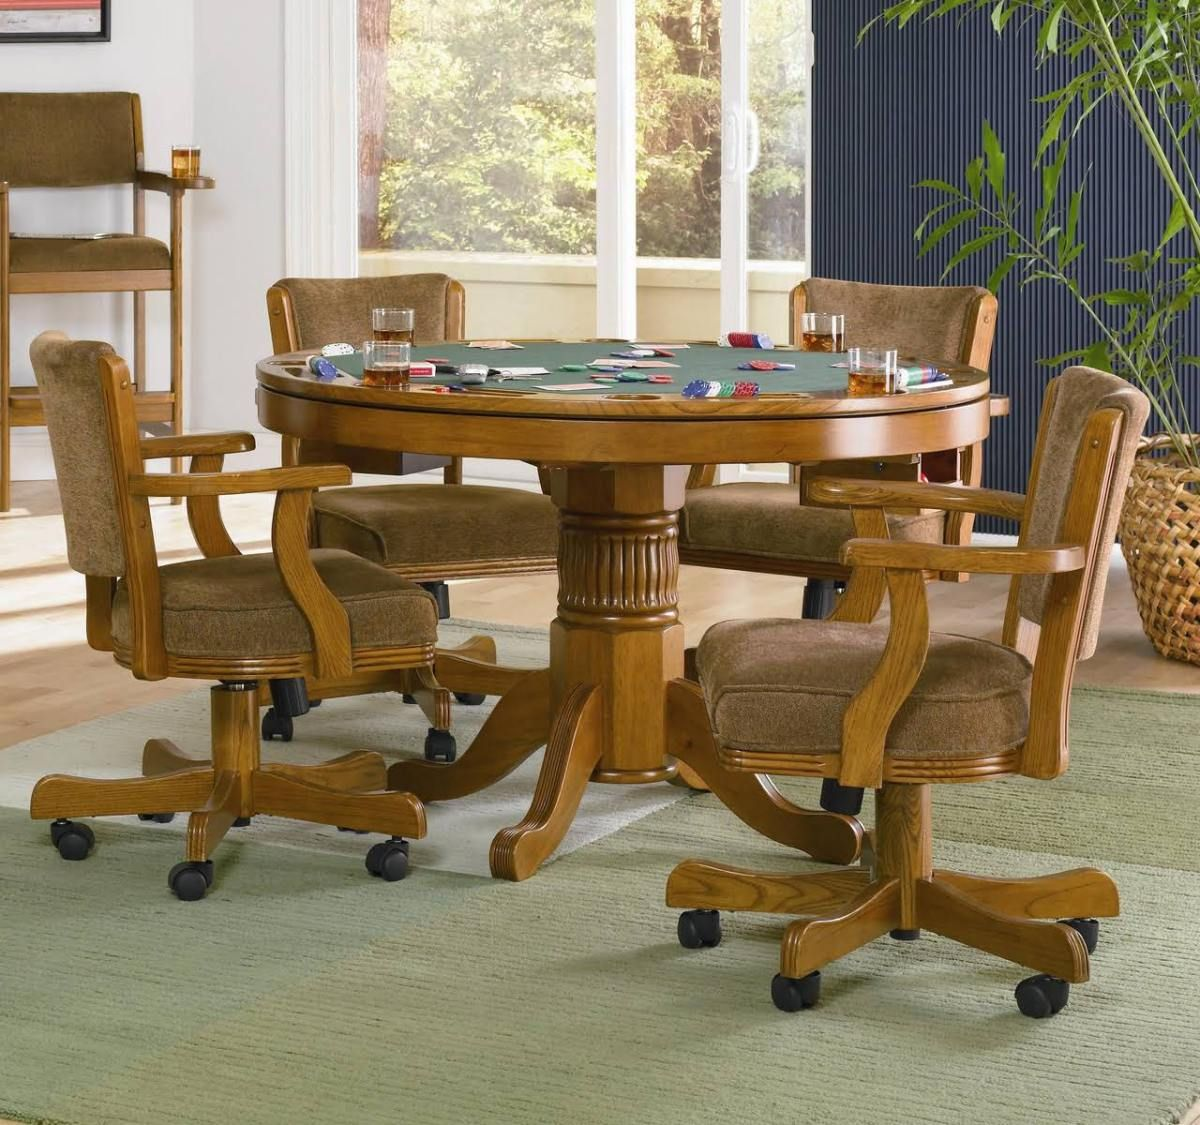 Pin this MITCHELL 3 IN 1 GAME TABLE IN OAK by Coaster in